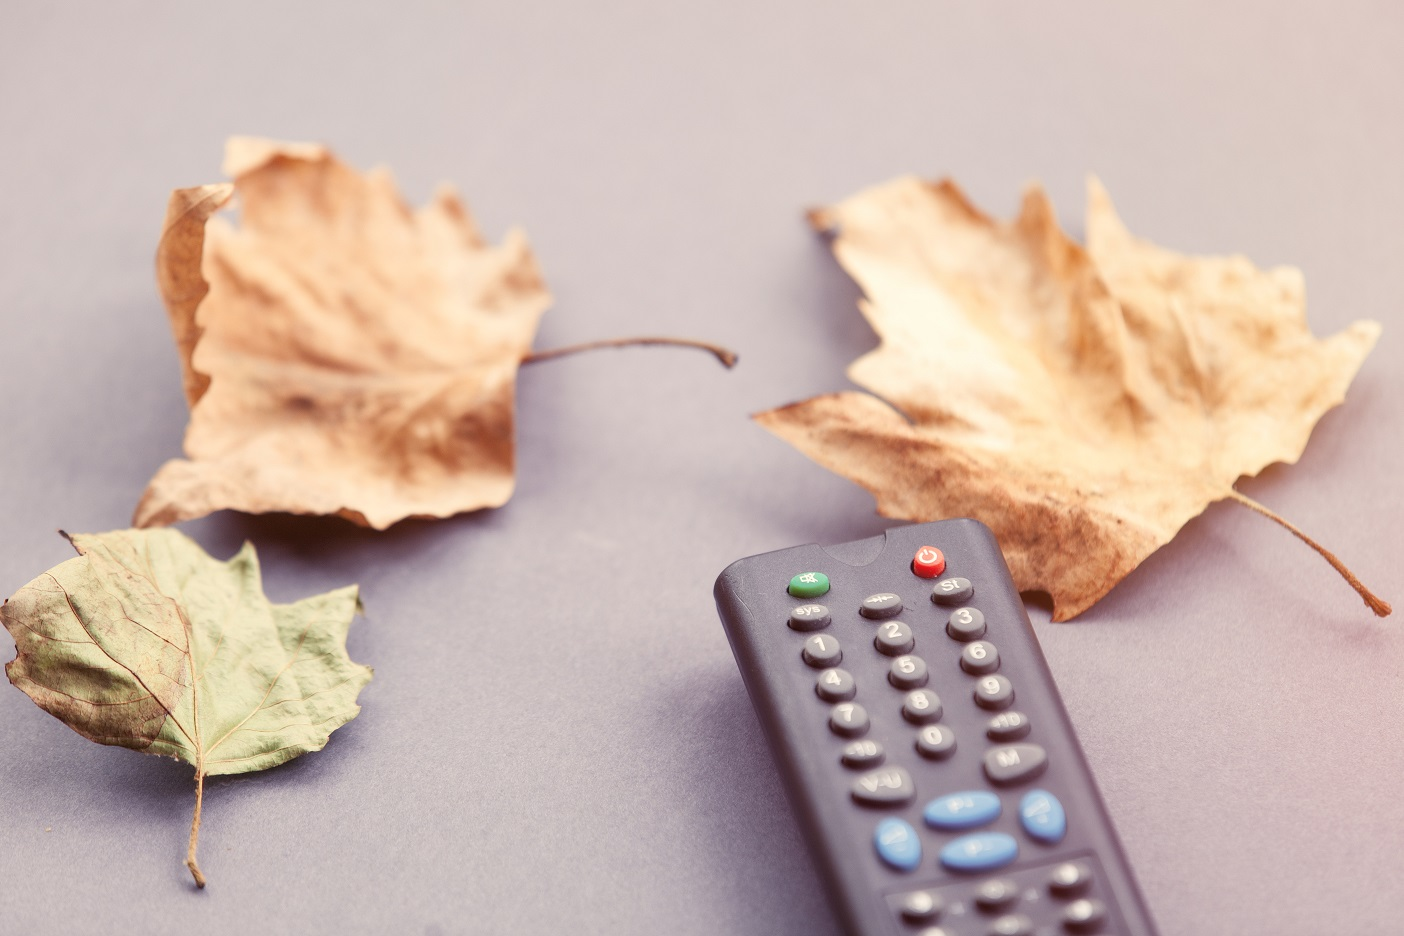 TV remote control and autumn leafs on grey background